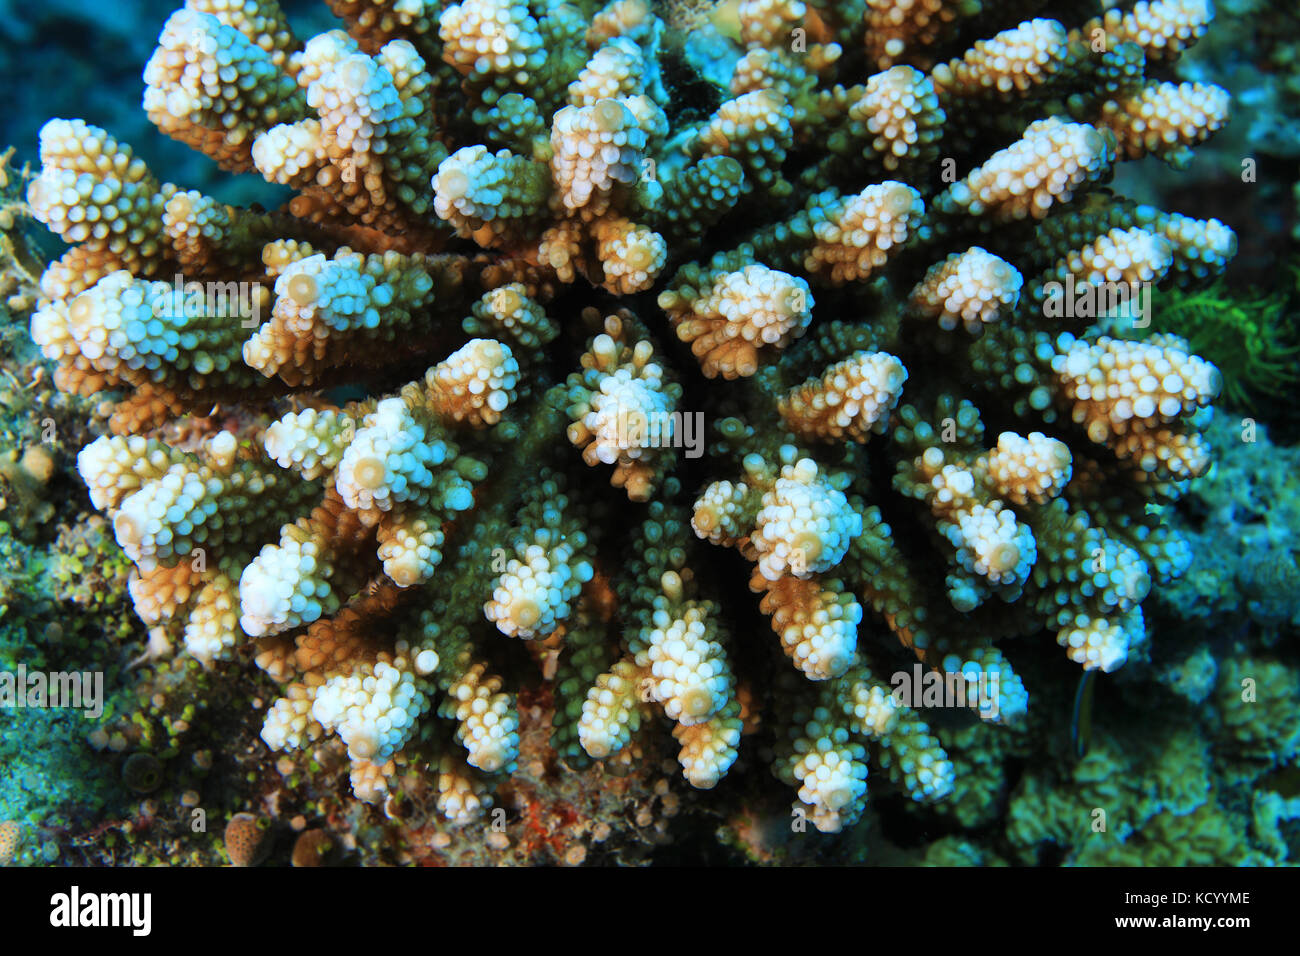 Close up of stony coral underwater in the tropical reef of the indian ocean - Stock Image